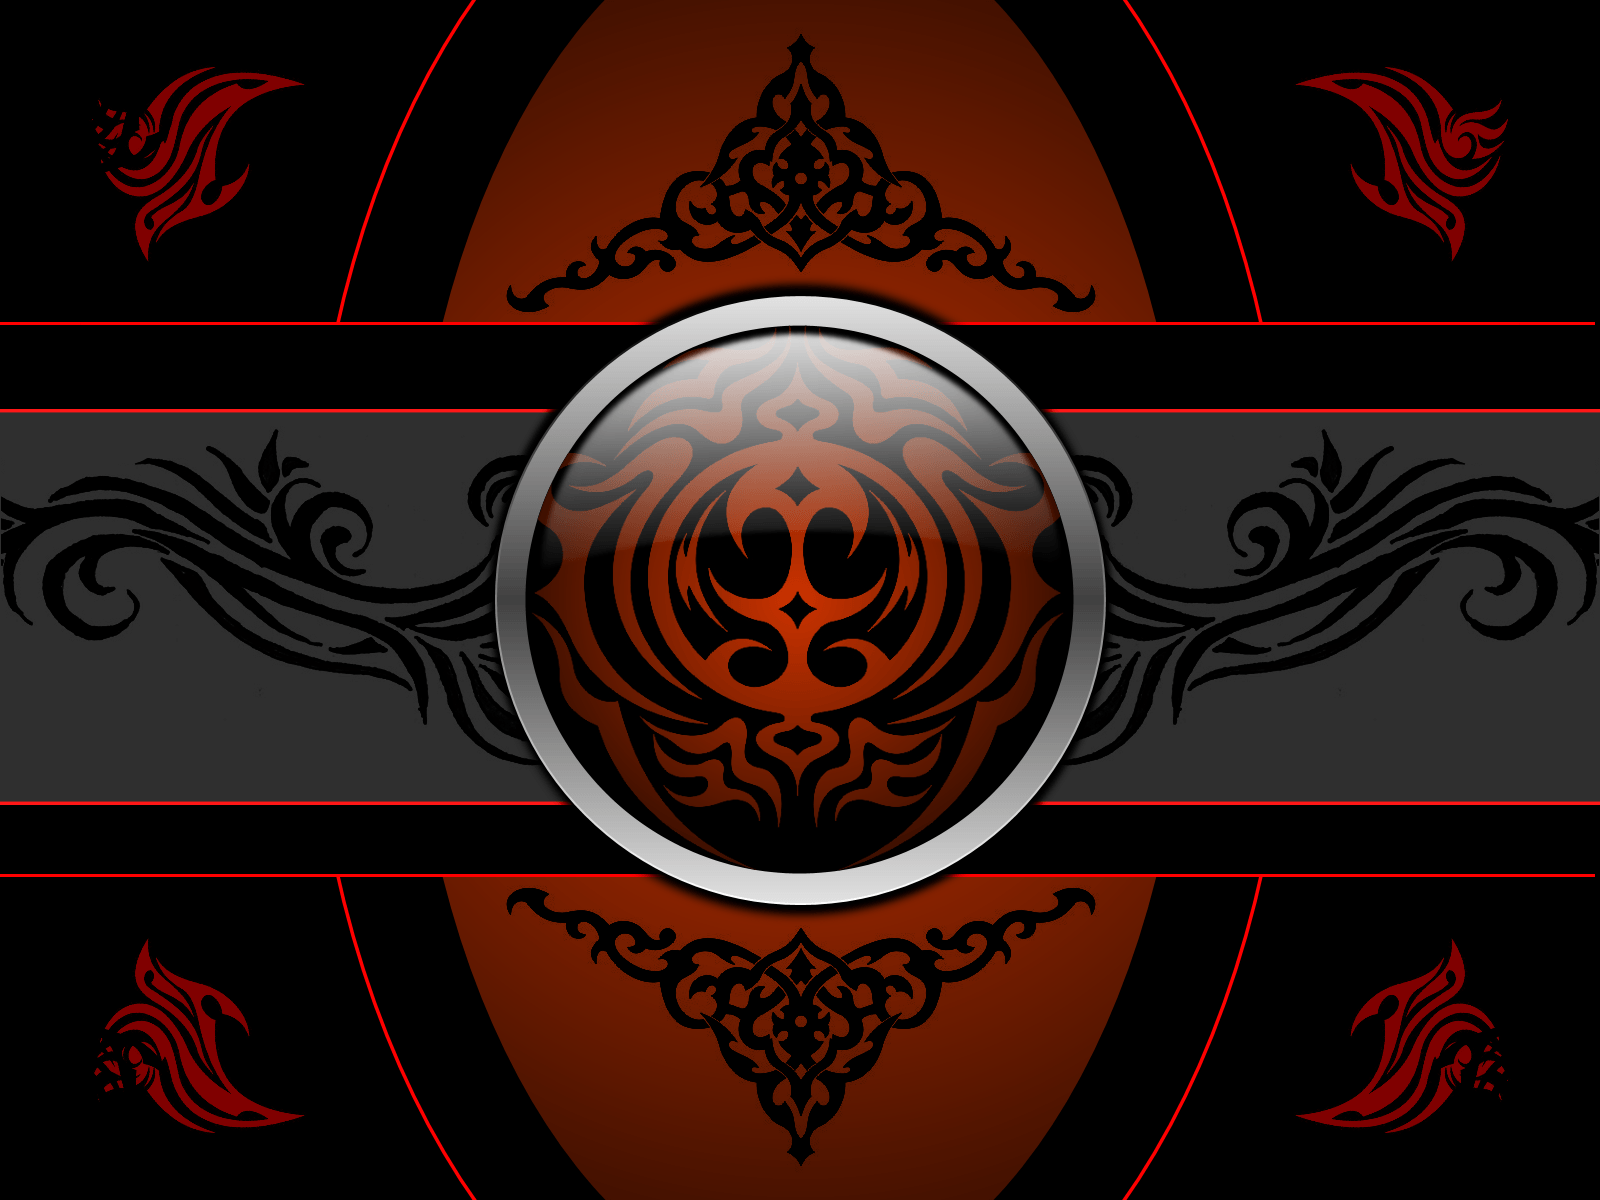 1600x1200 - Cool Tribal Backgrounds 20